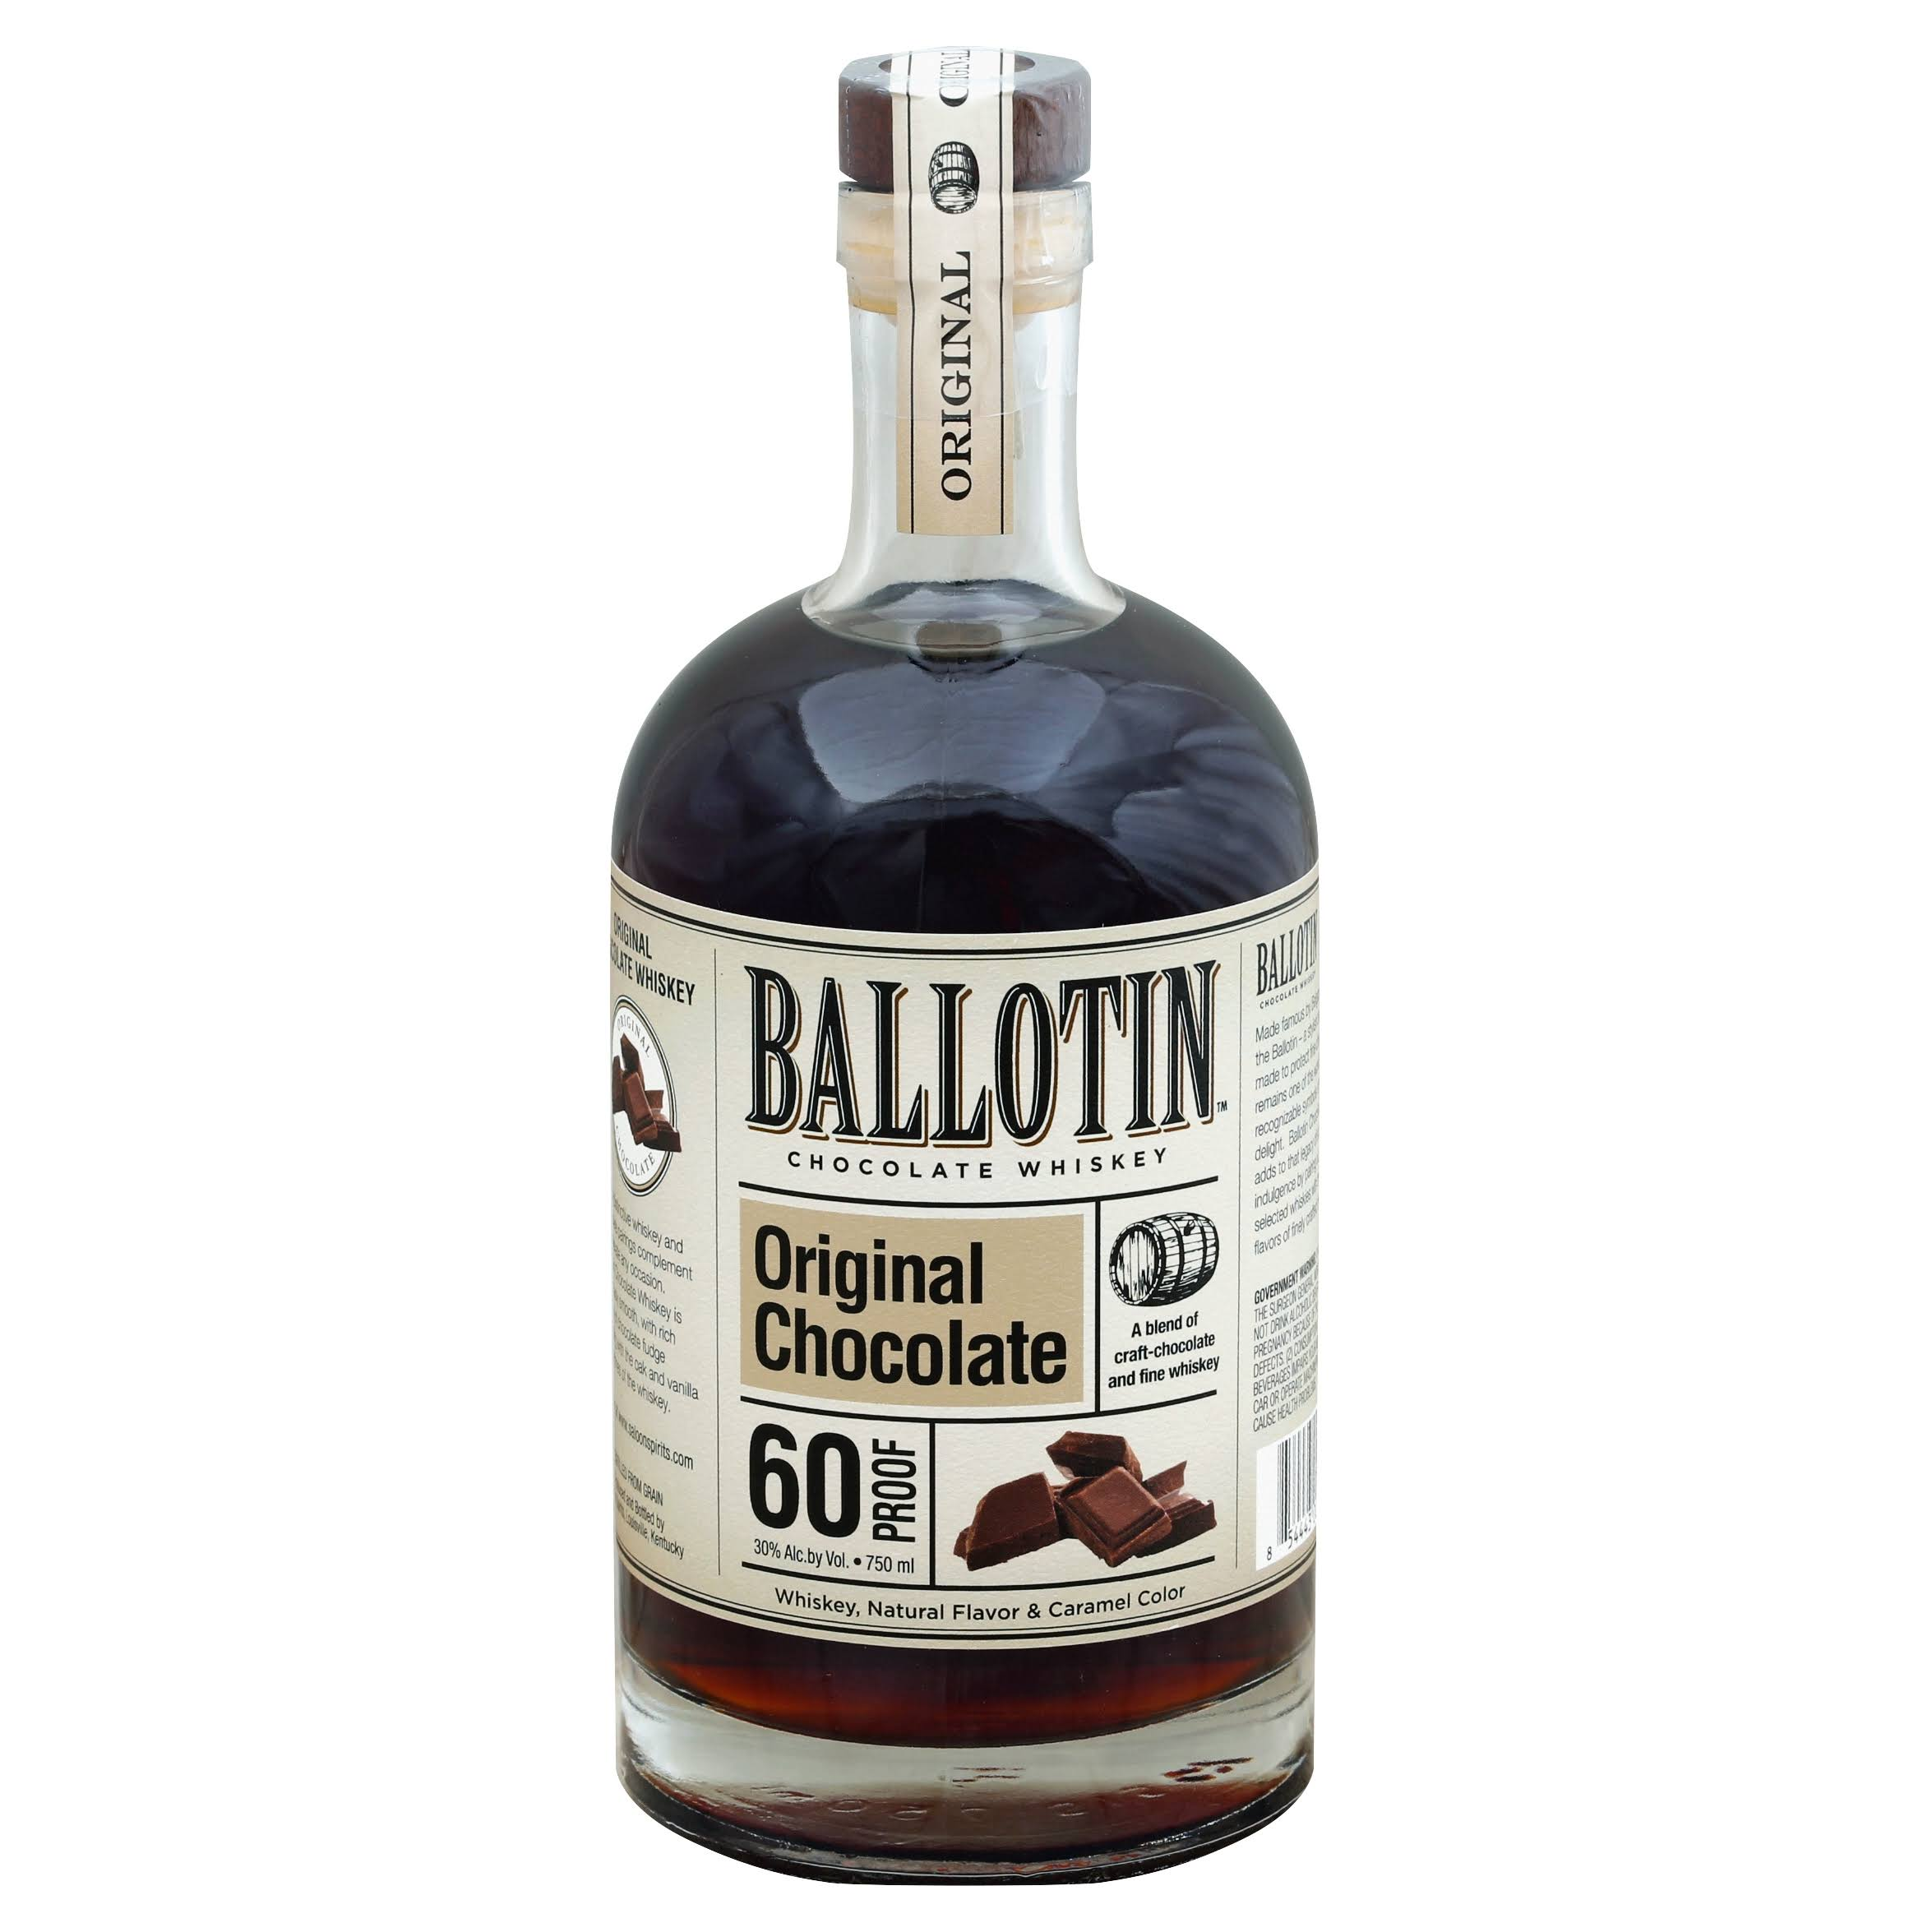 Ballotin Whiskey, Chocolate, Original Chocolate - 750 ml